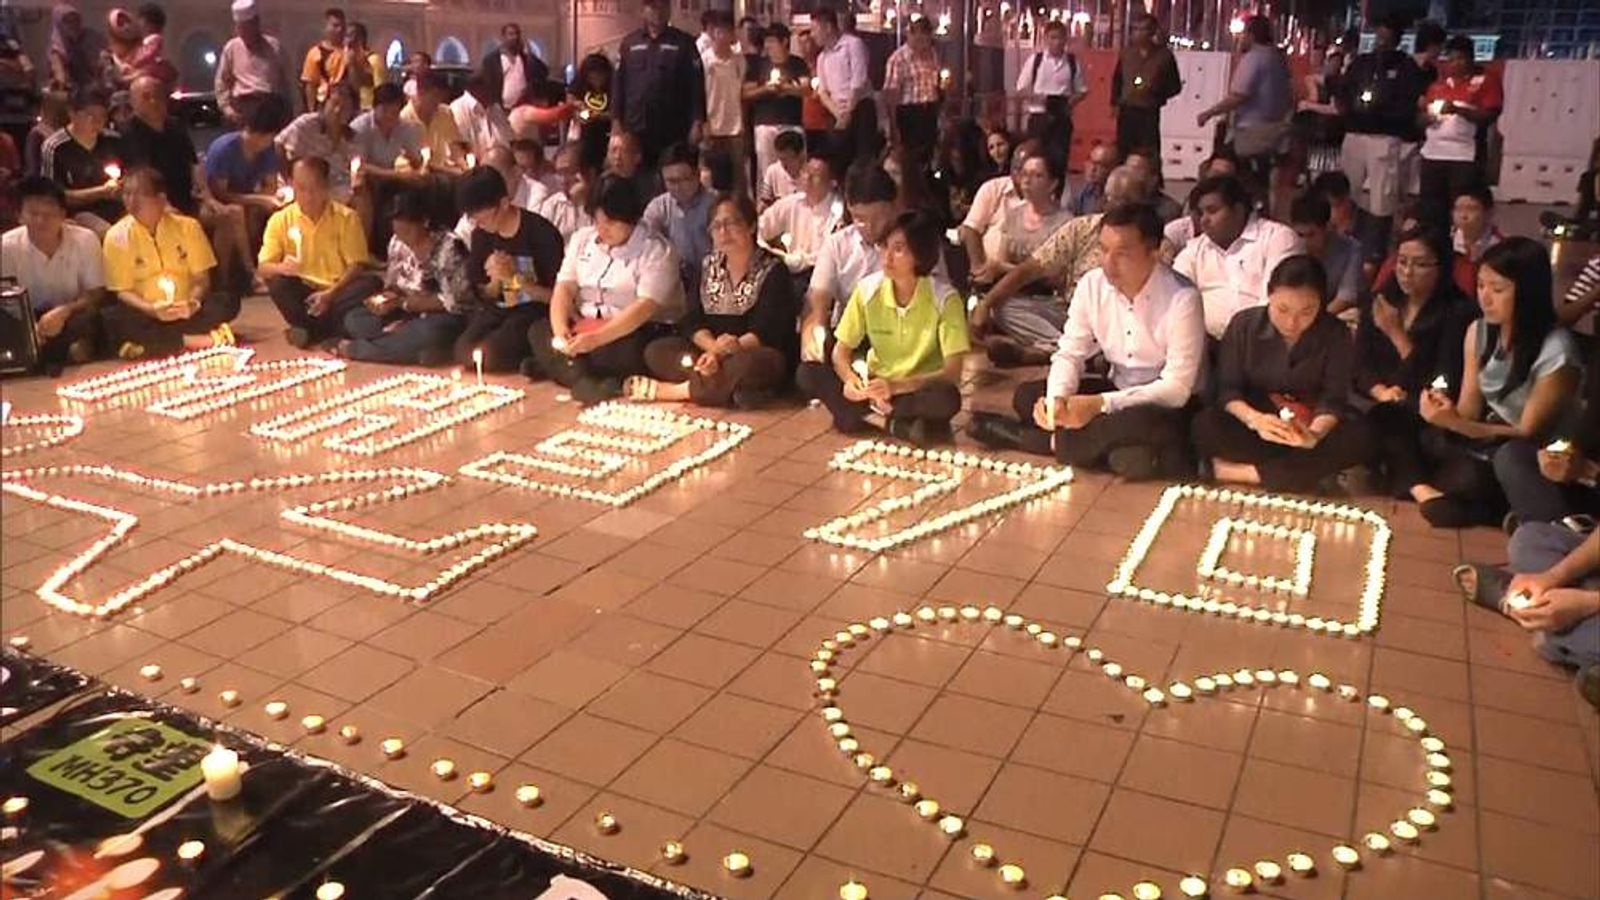 Families of passengers missing on flight MH370 hold a prayer vigil in Kuala Lumpur.